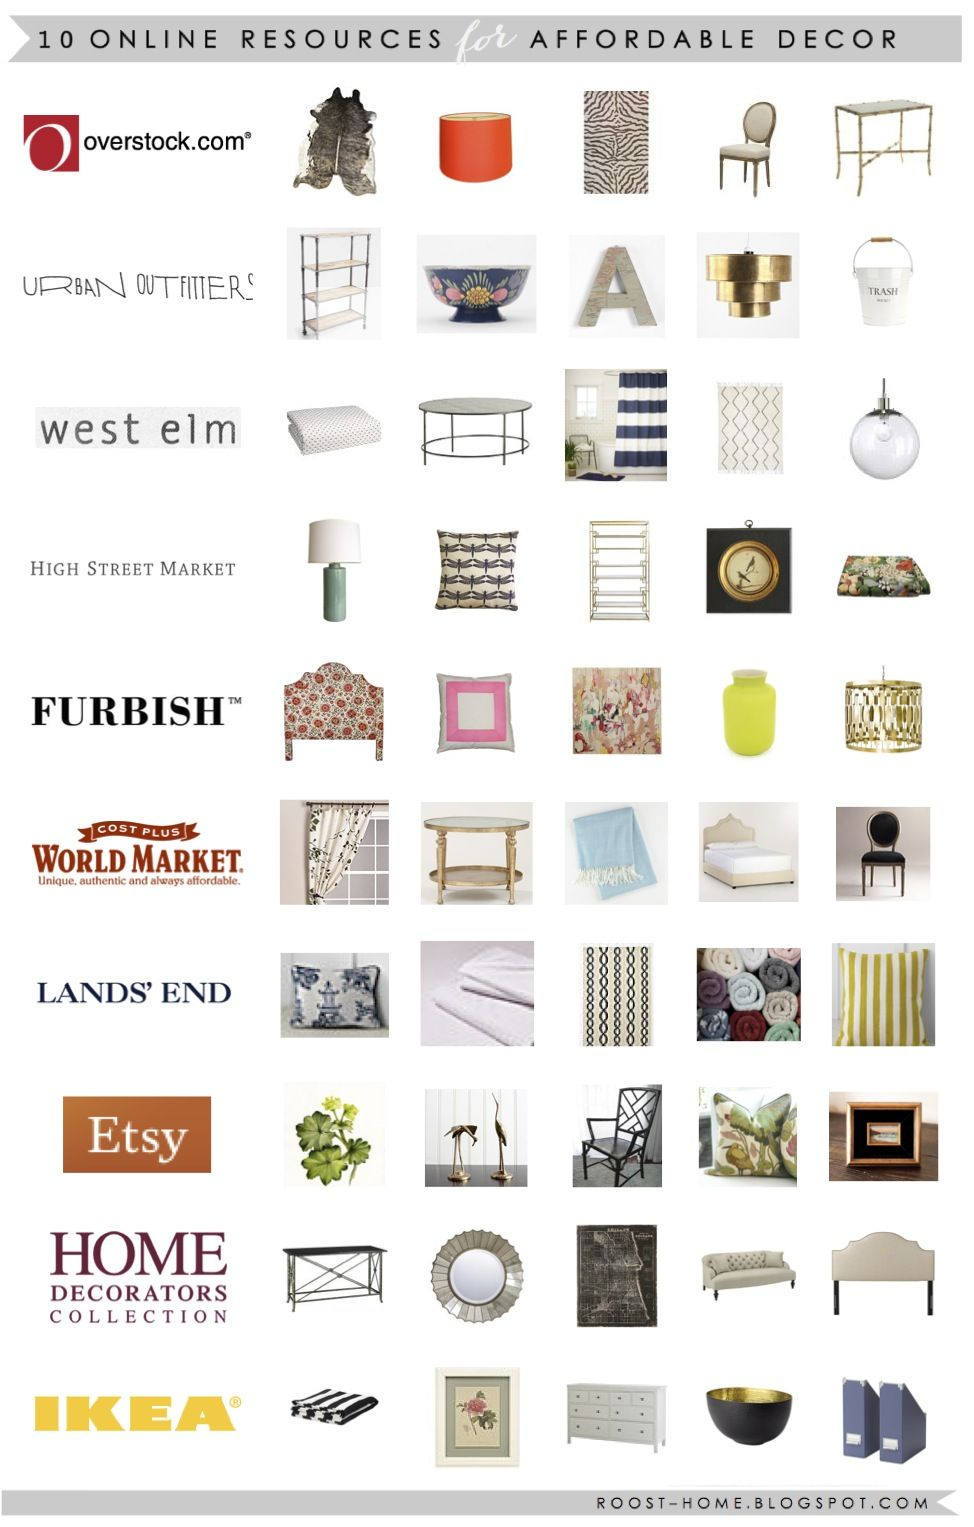 Great list of affordable decor resources from Roost.com